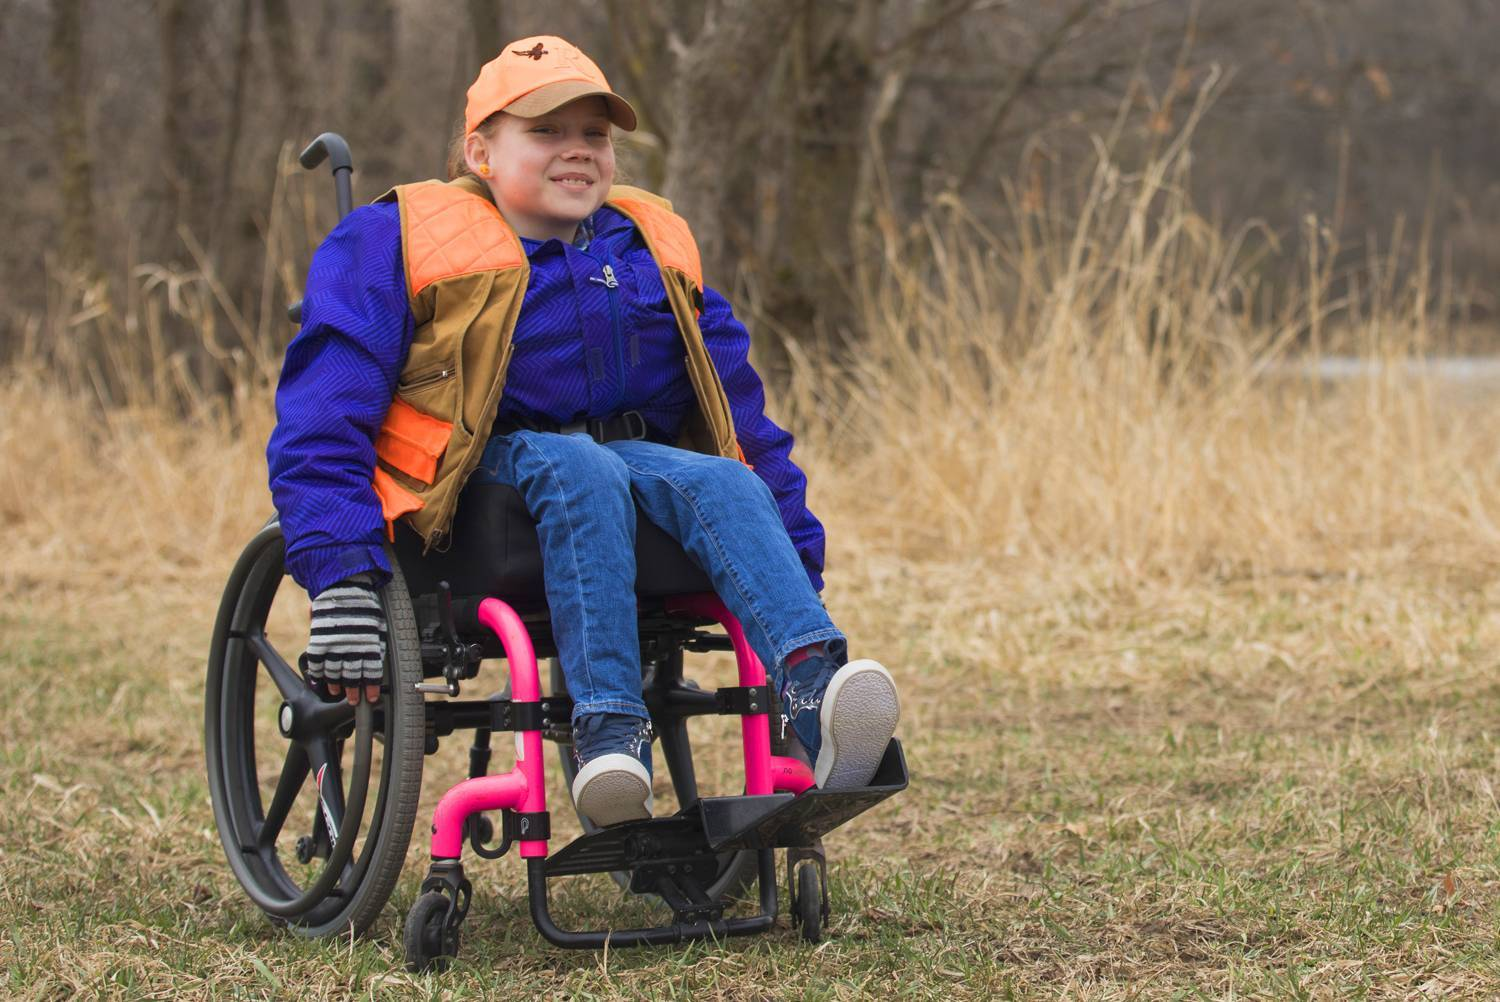 Hailey, who has spina bifida, loves being outdoors.